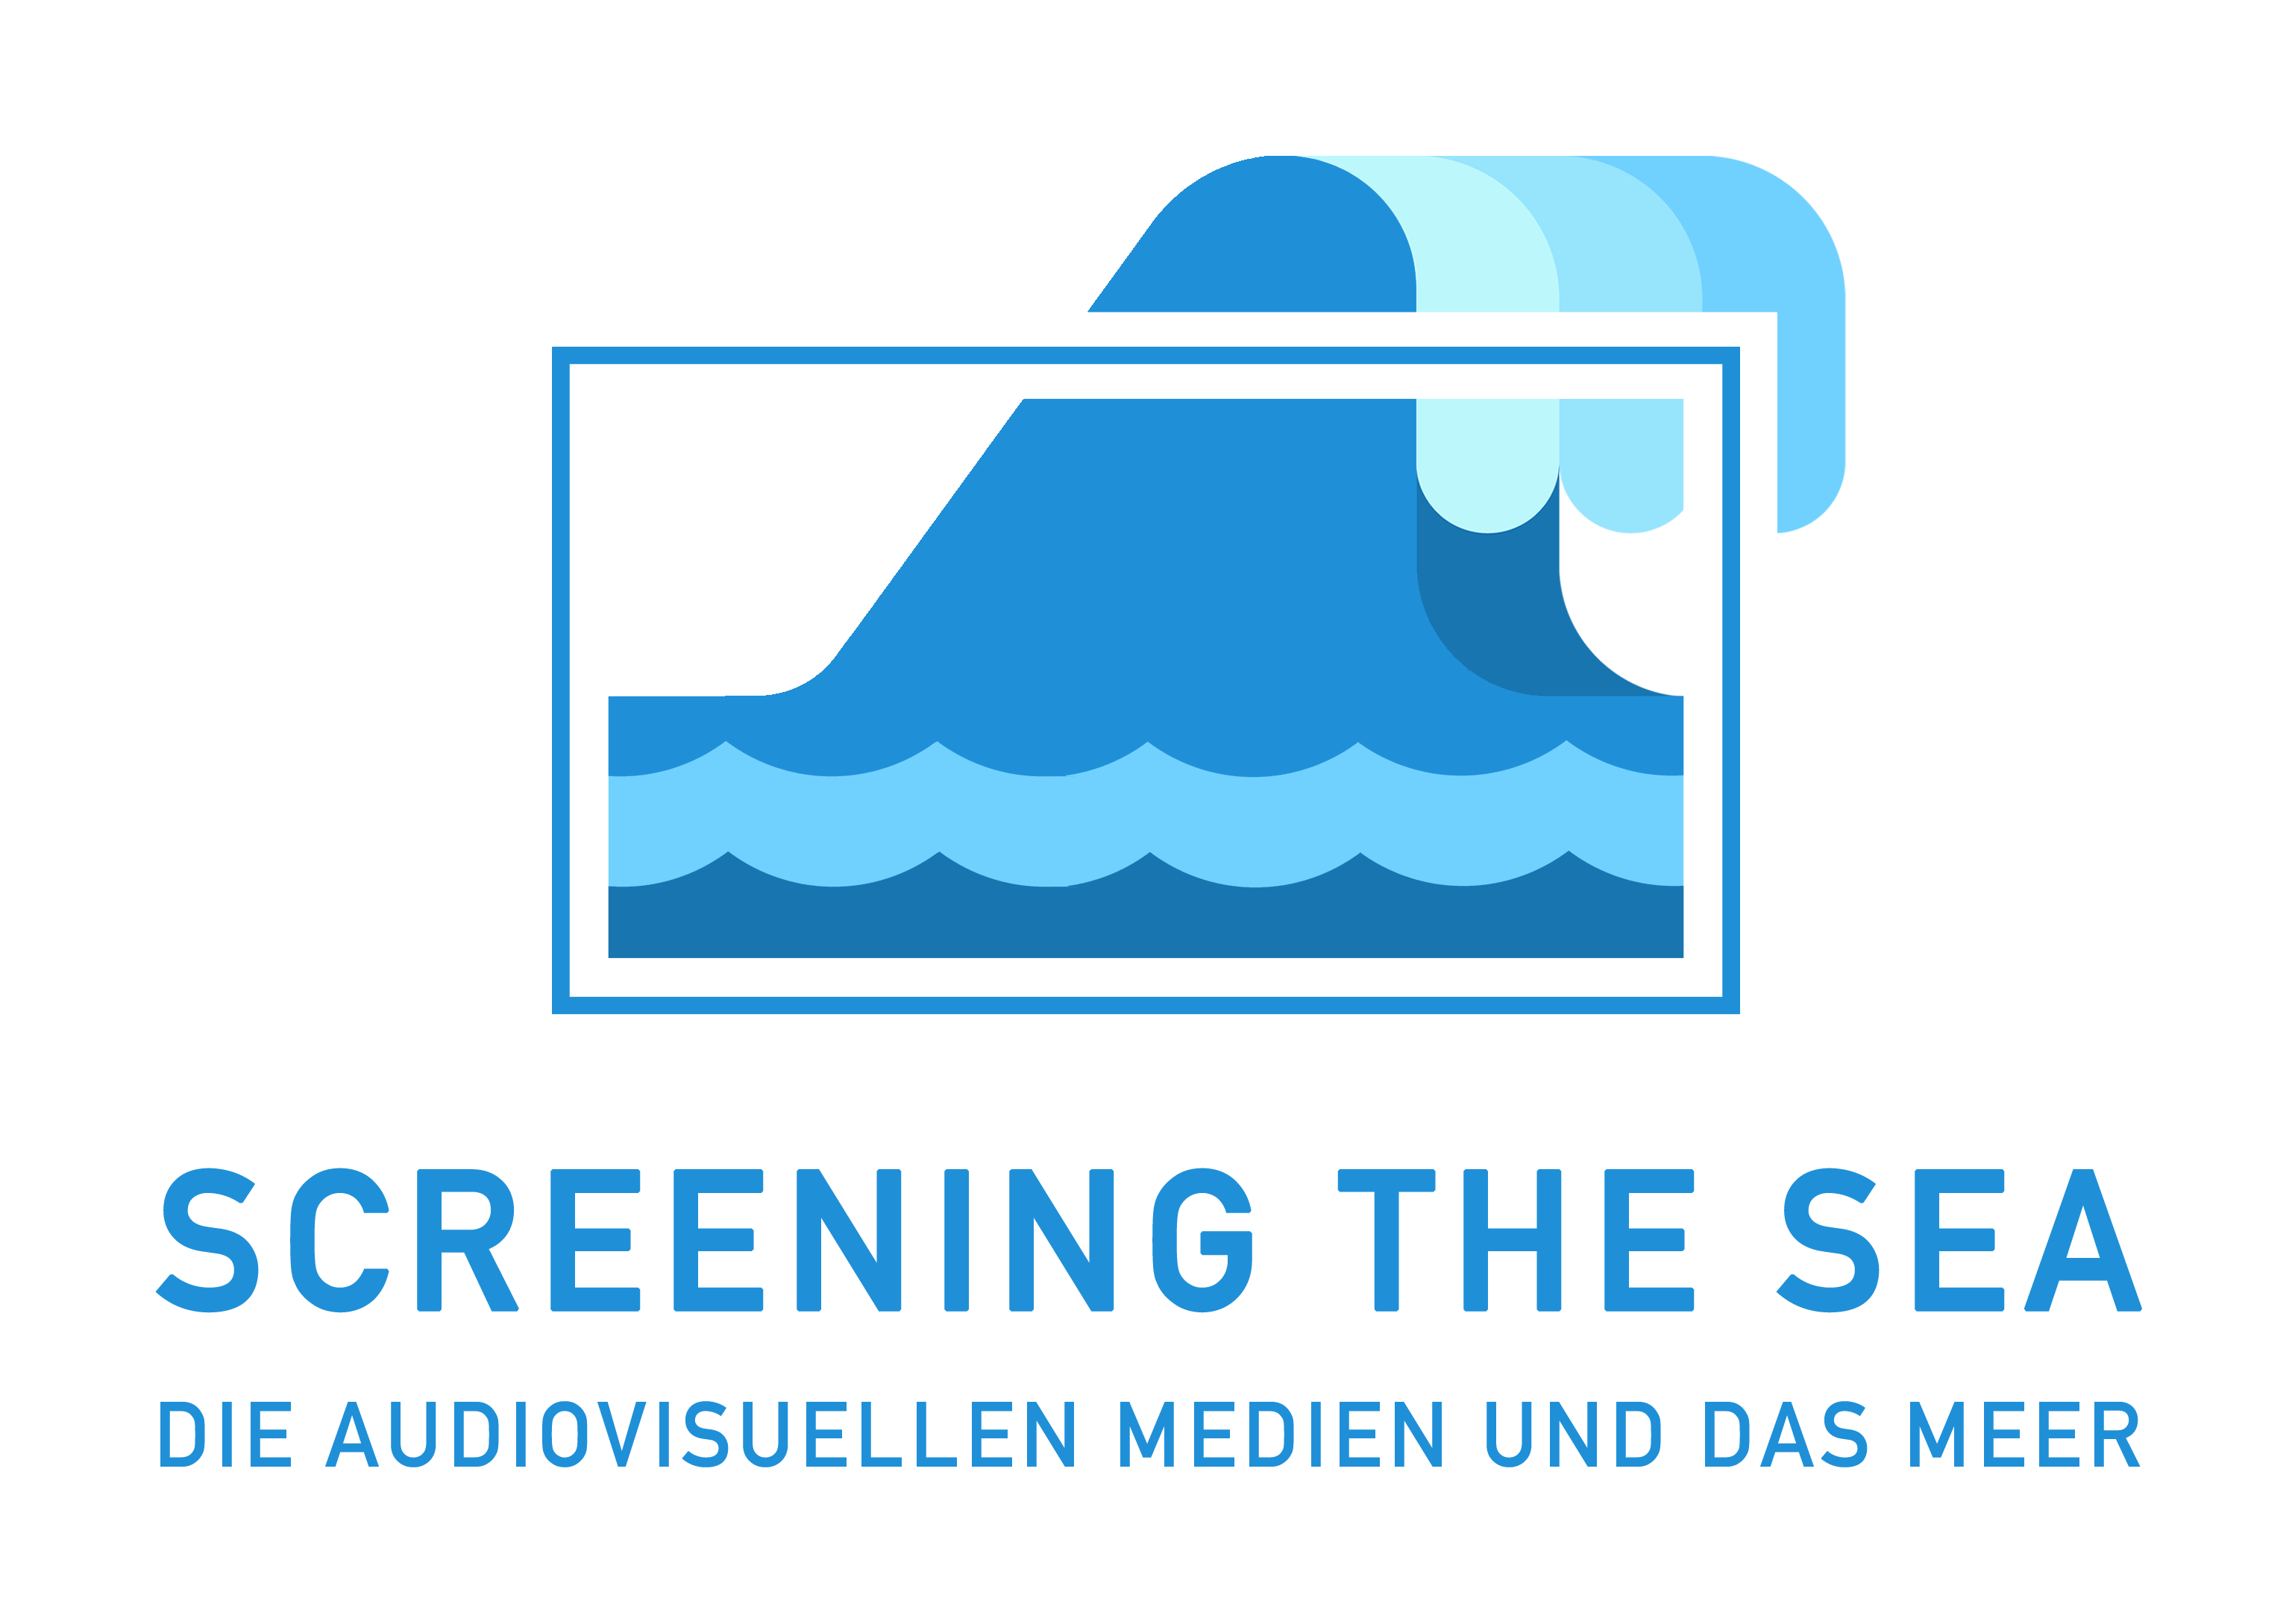 Conference-logo »Screening The Sea«